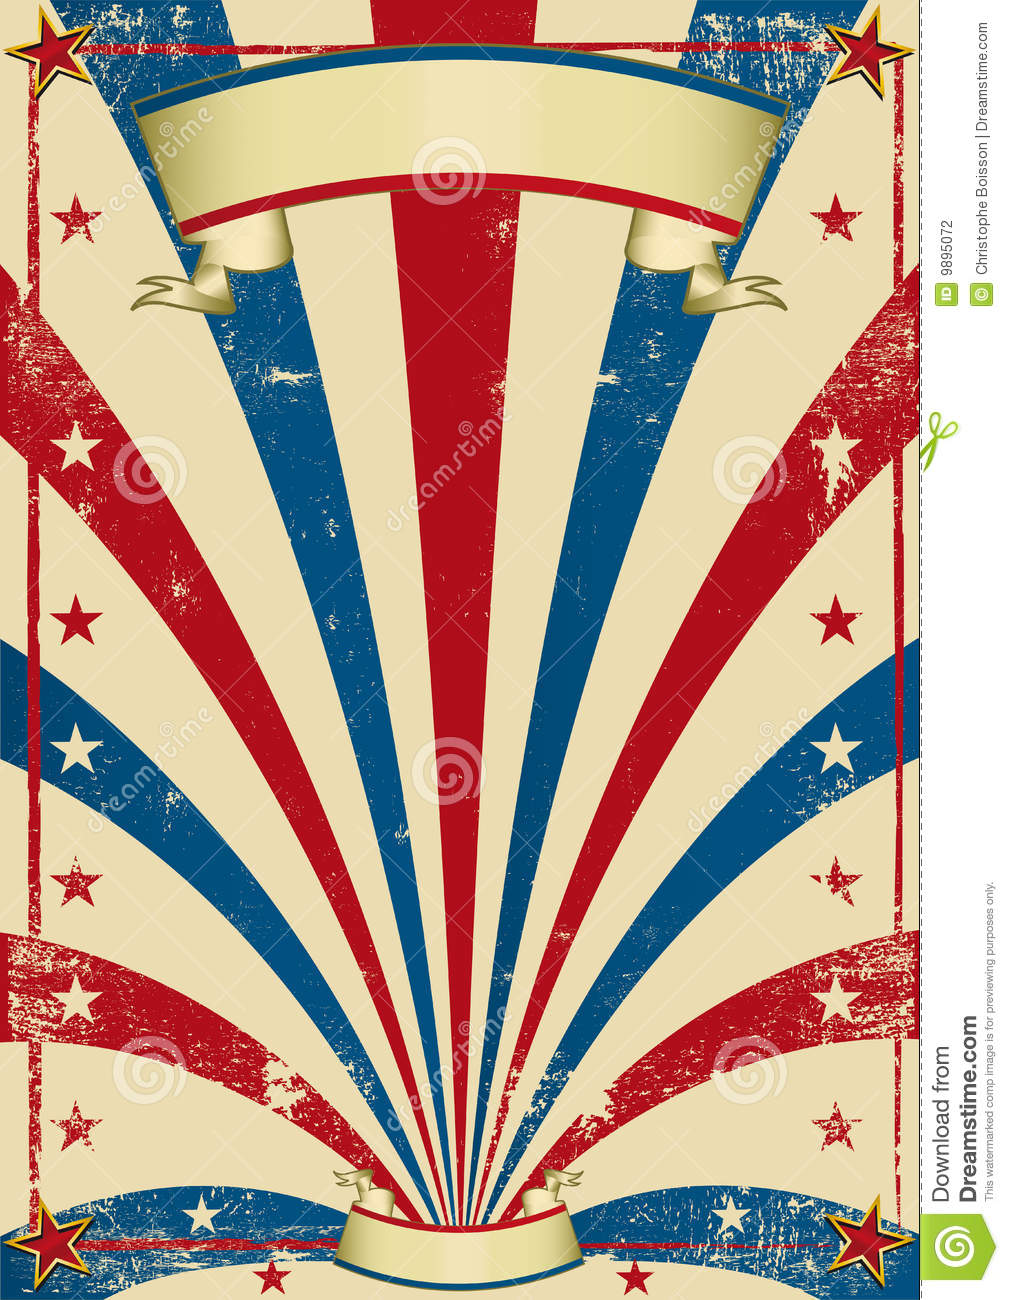 Circus Vintage Poster Stock Photography Image 9895072